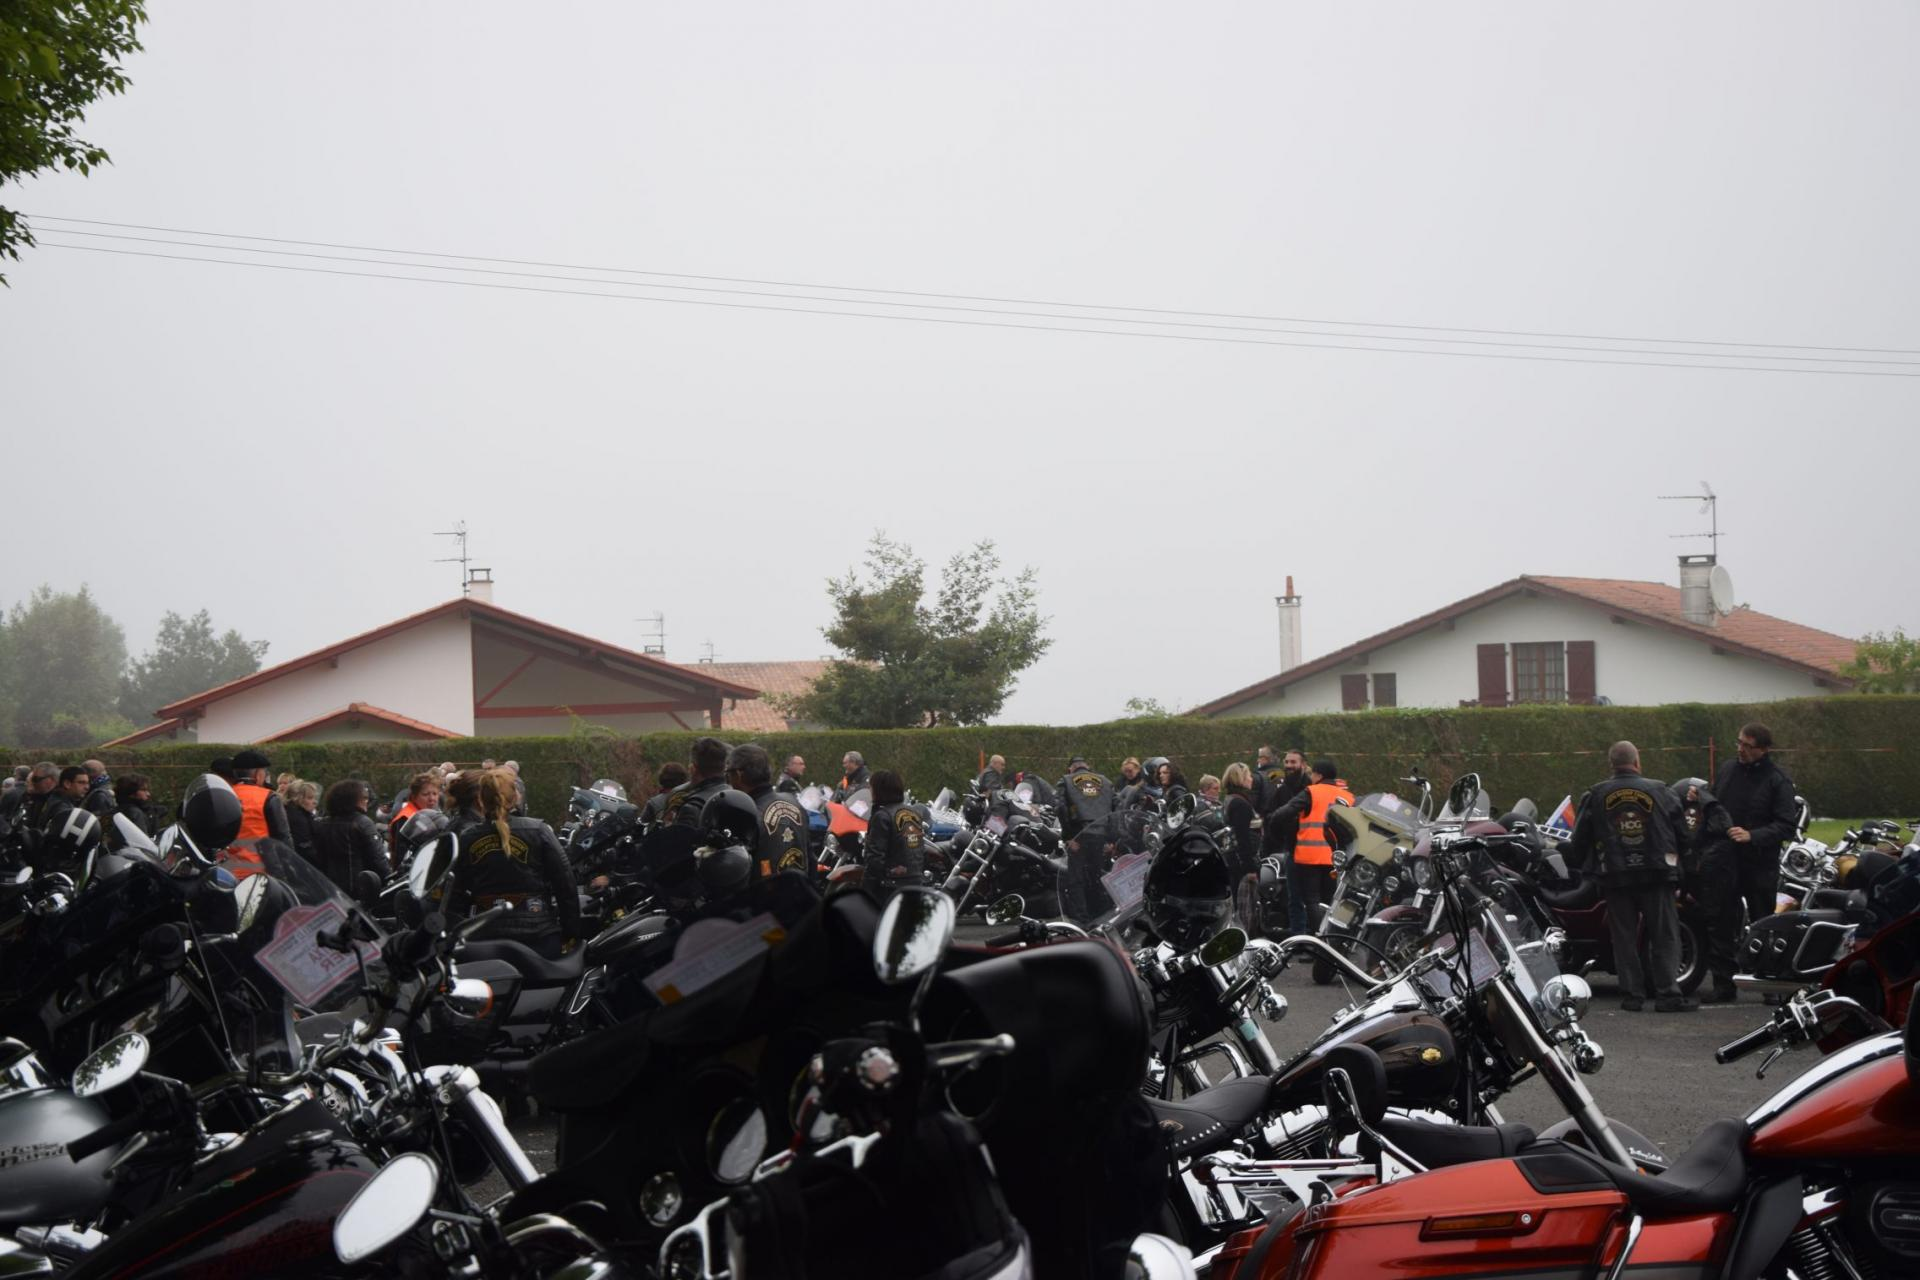 Le parking est plein, HARLEY